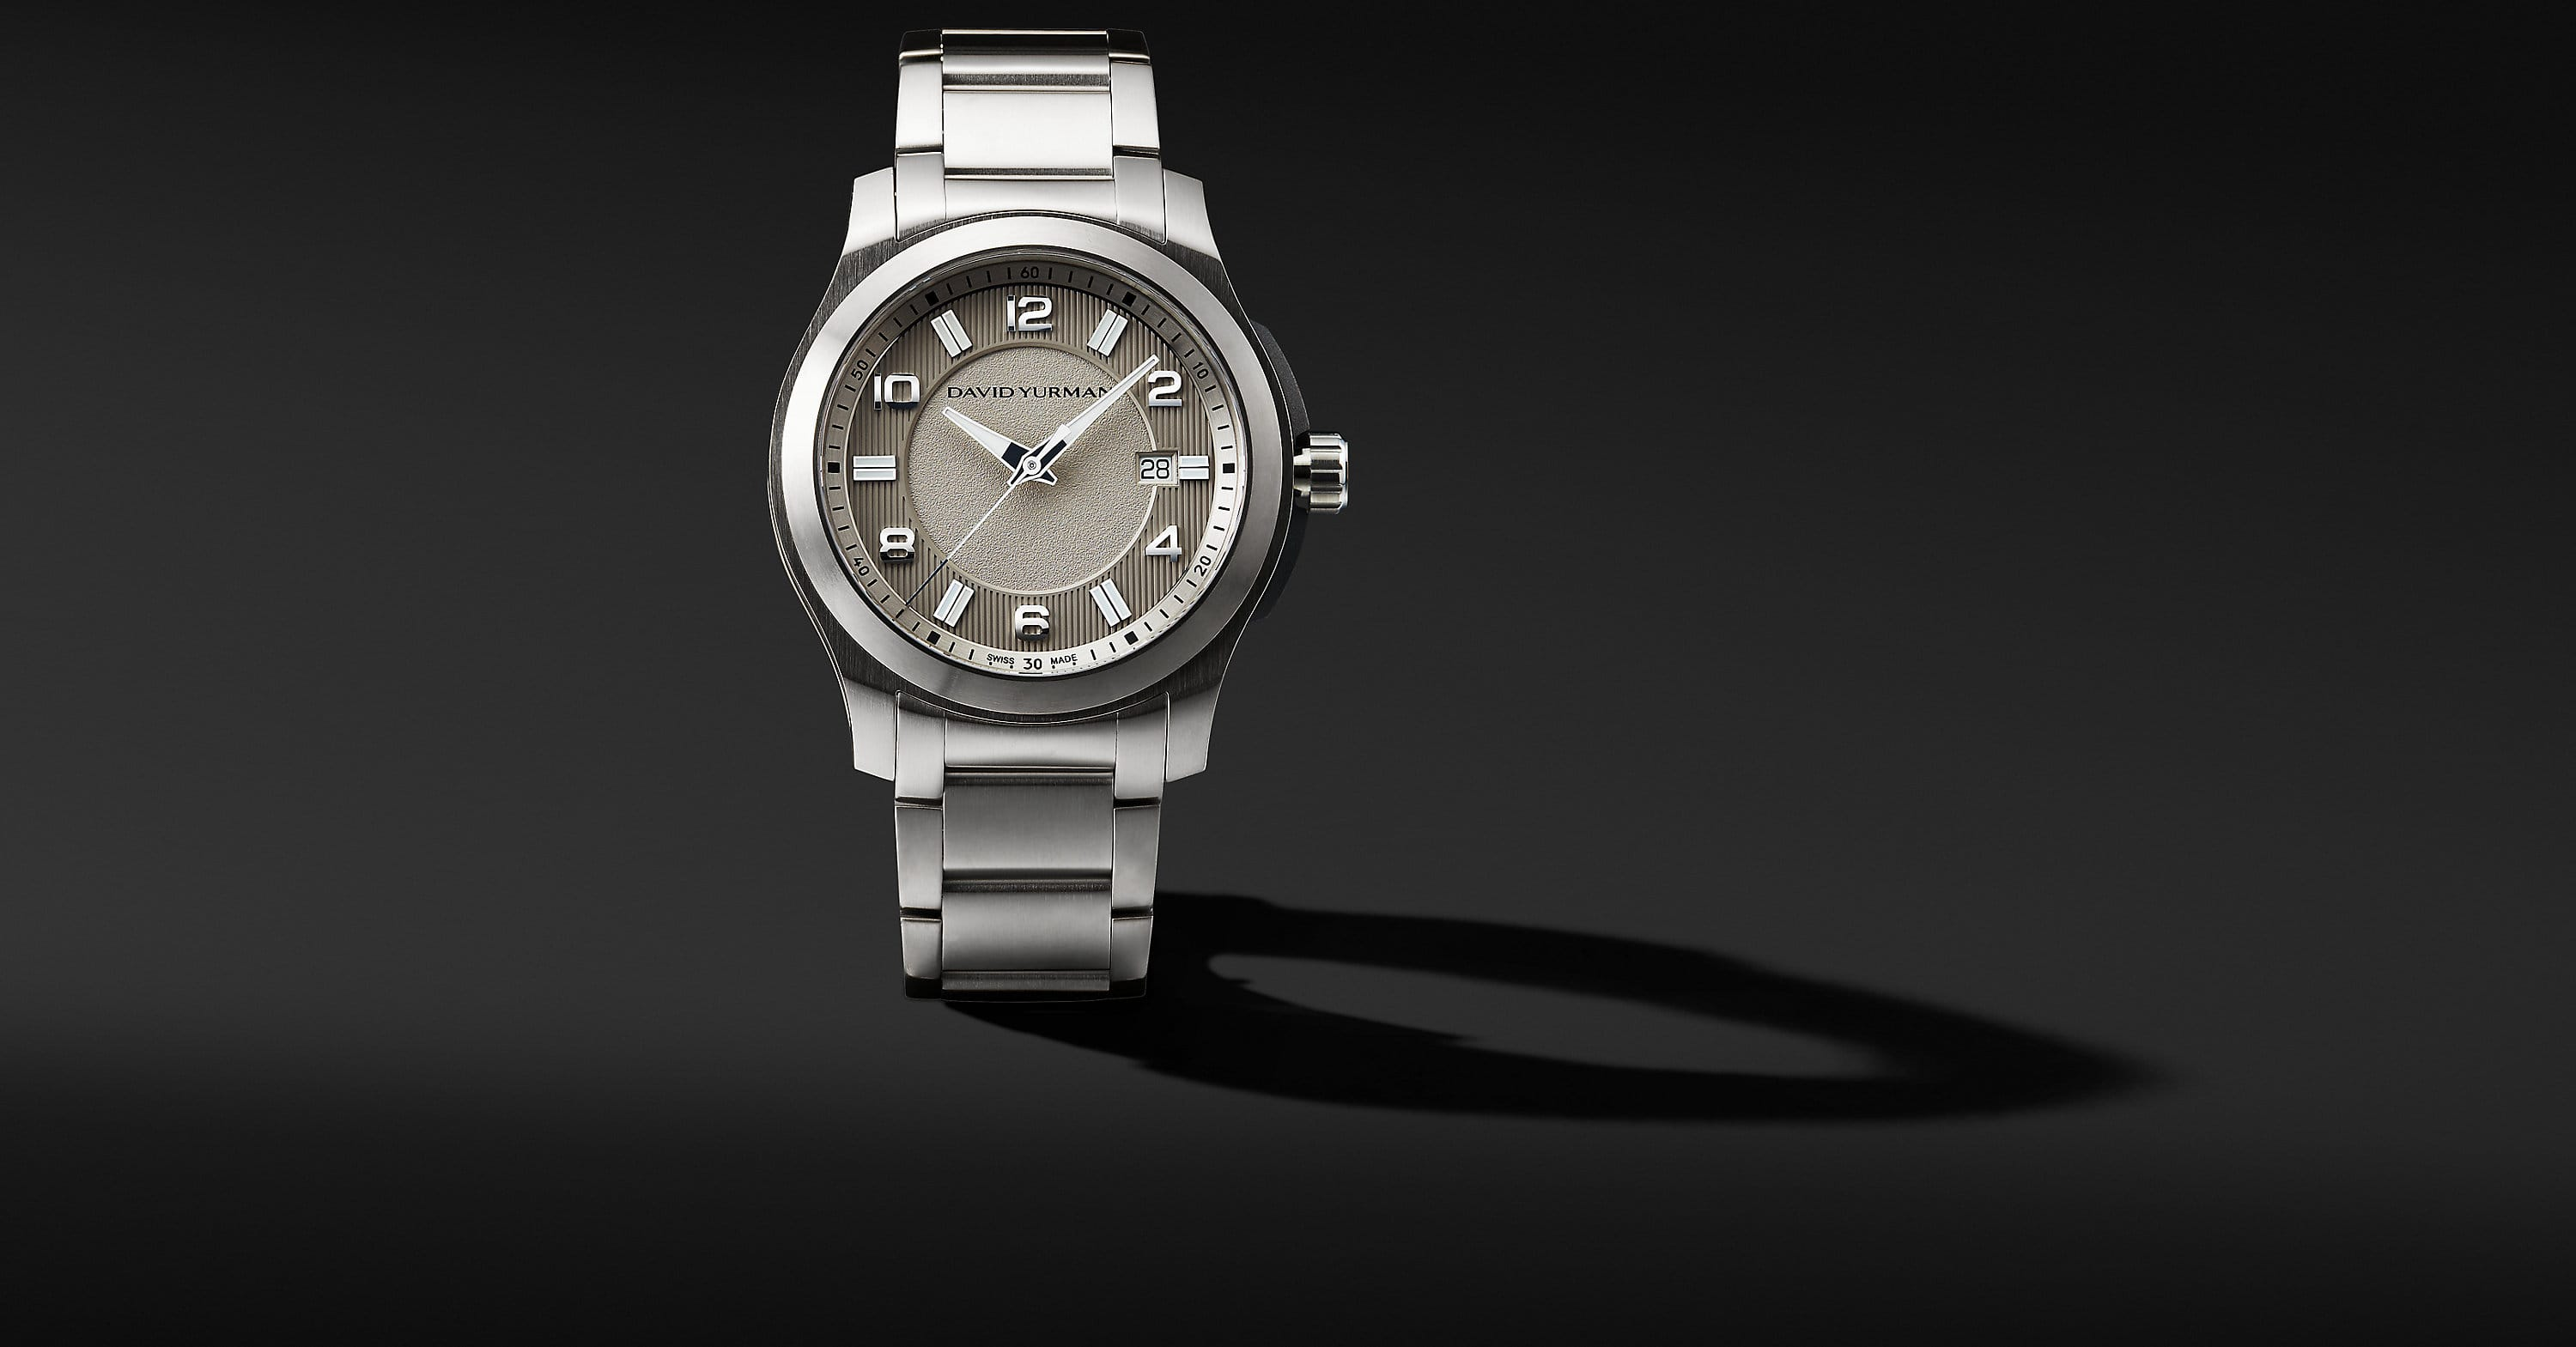 Revolution 43.5mm Stainless Steel Automatic Watch